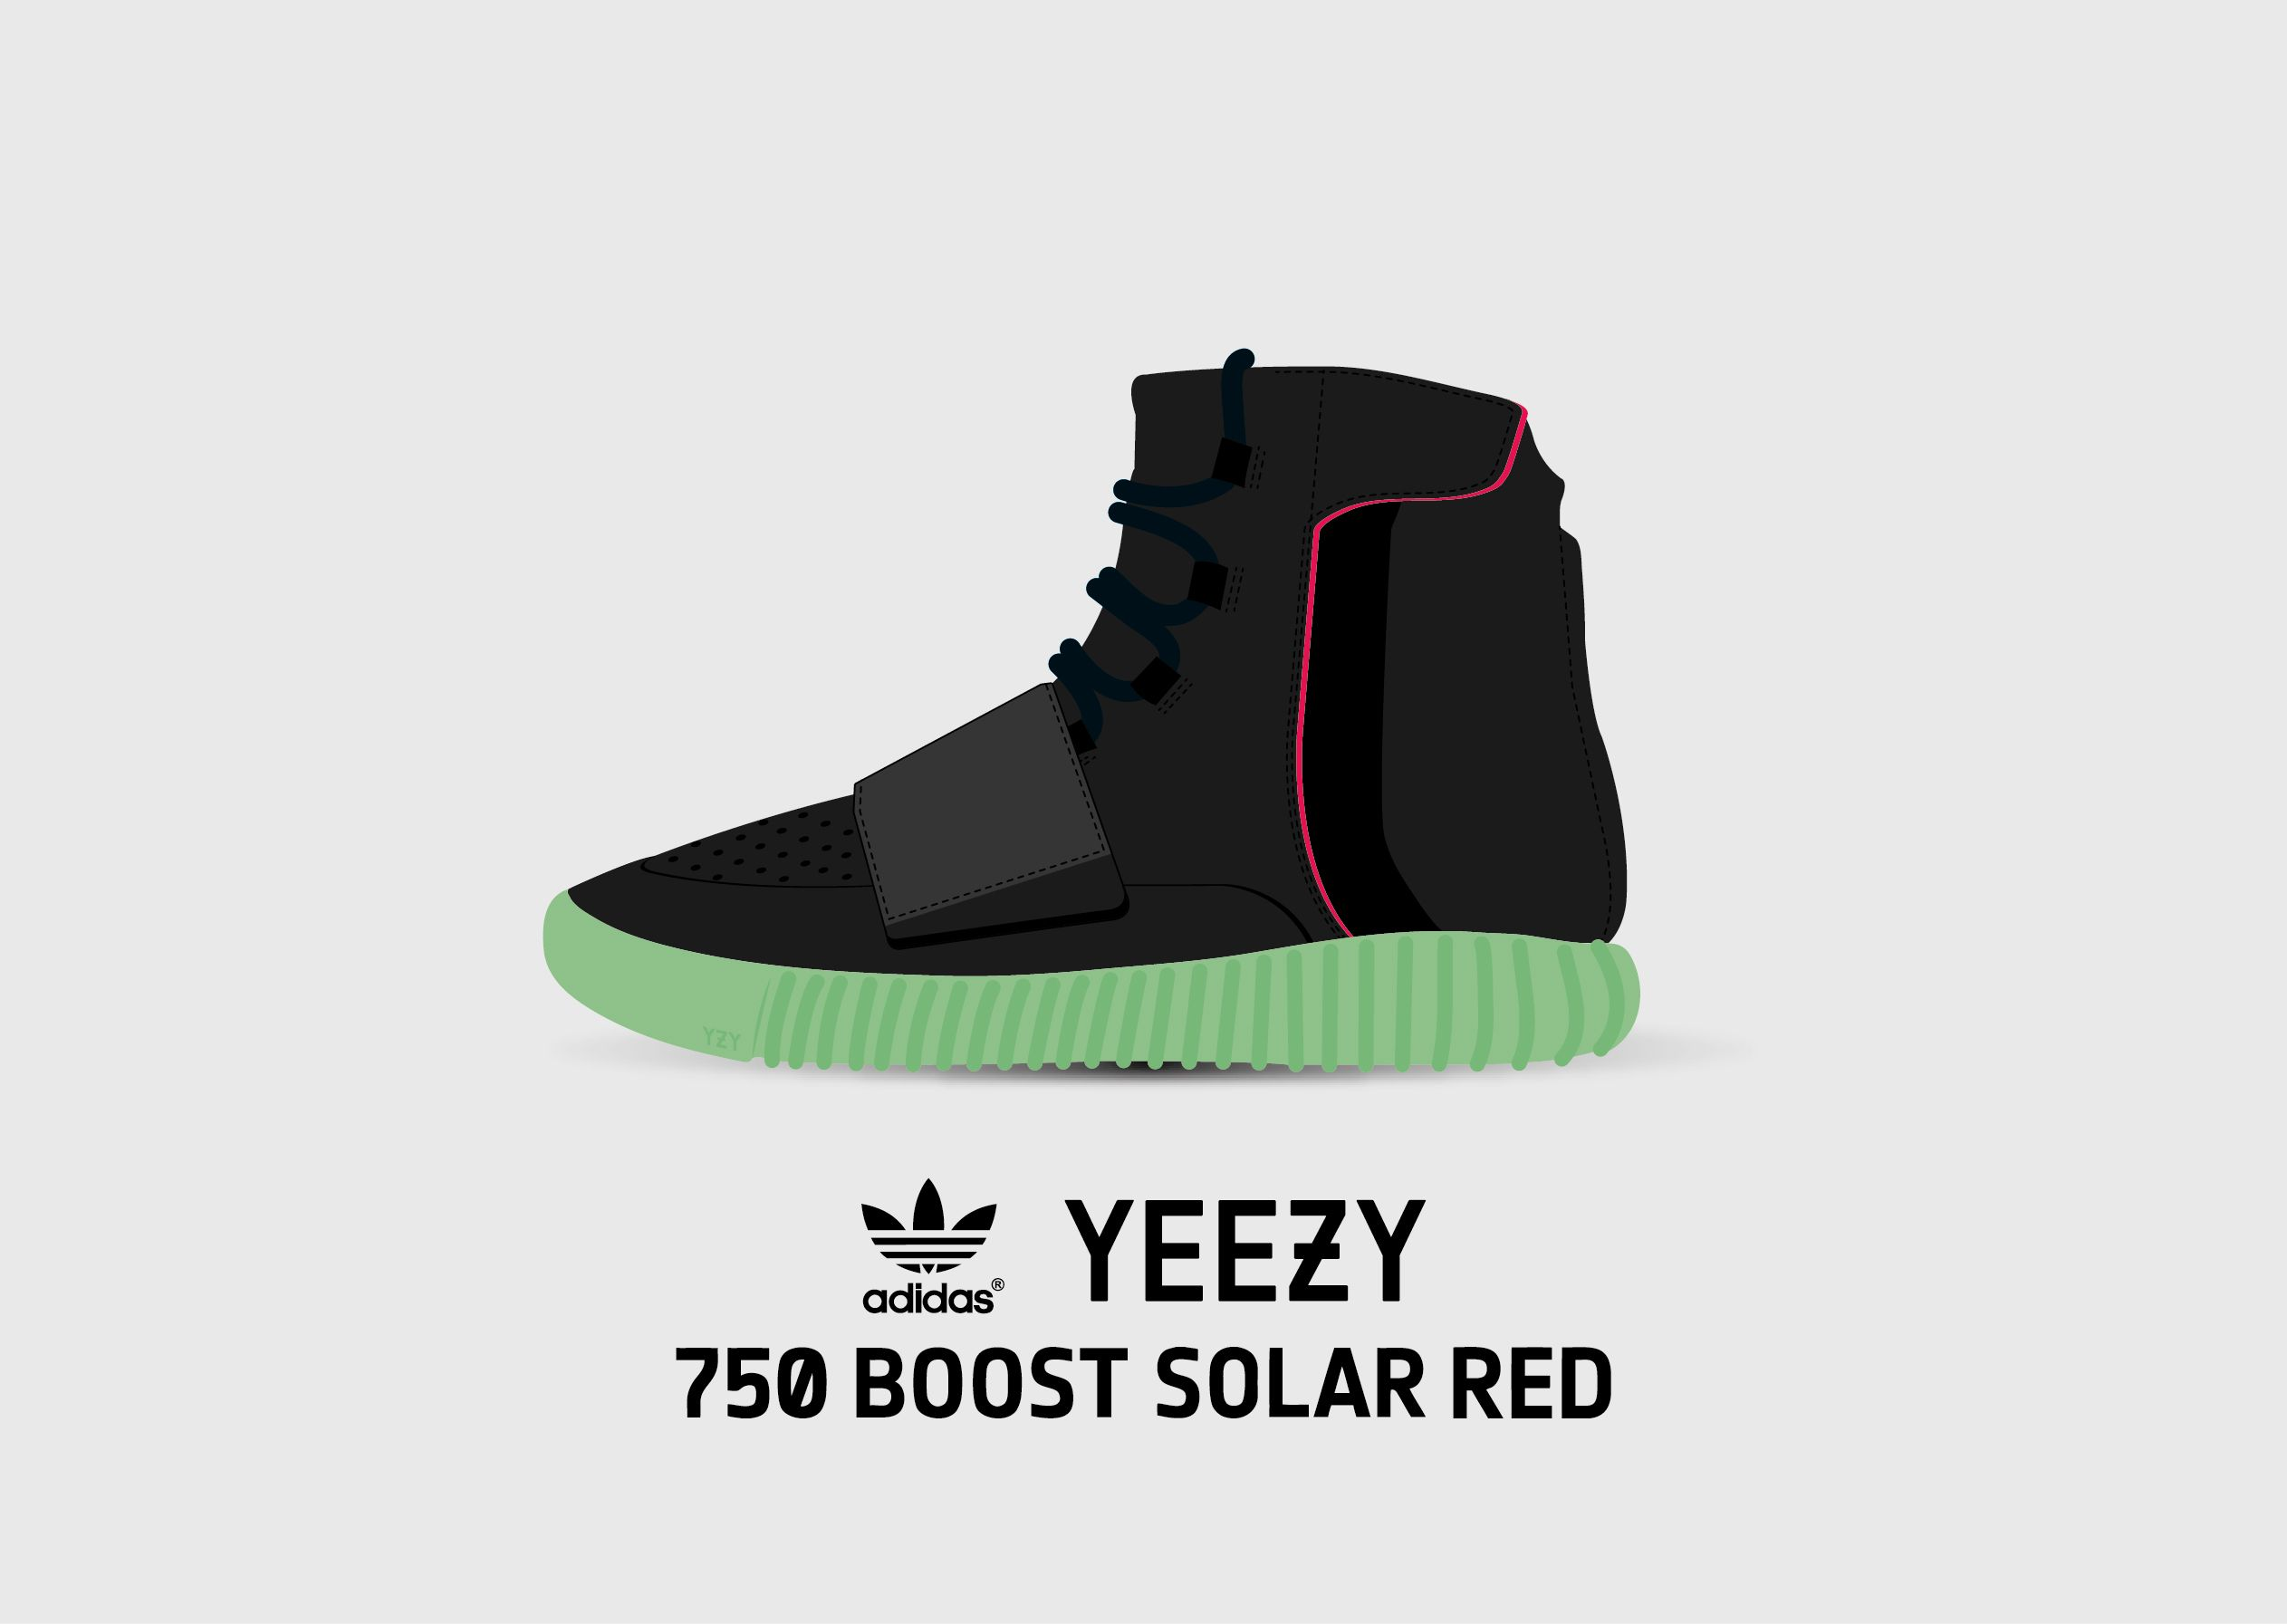 Adidas Yeezy 750 Boost Red